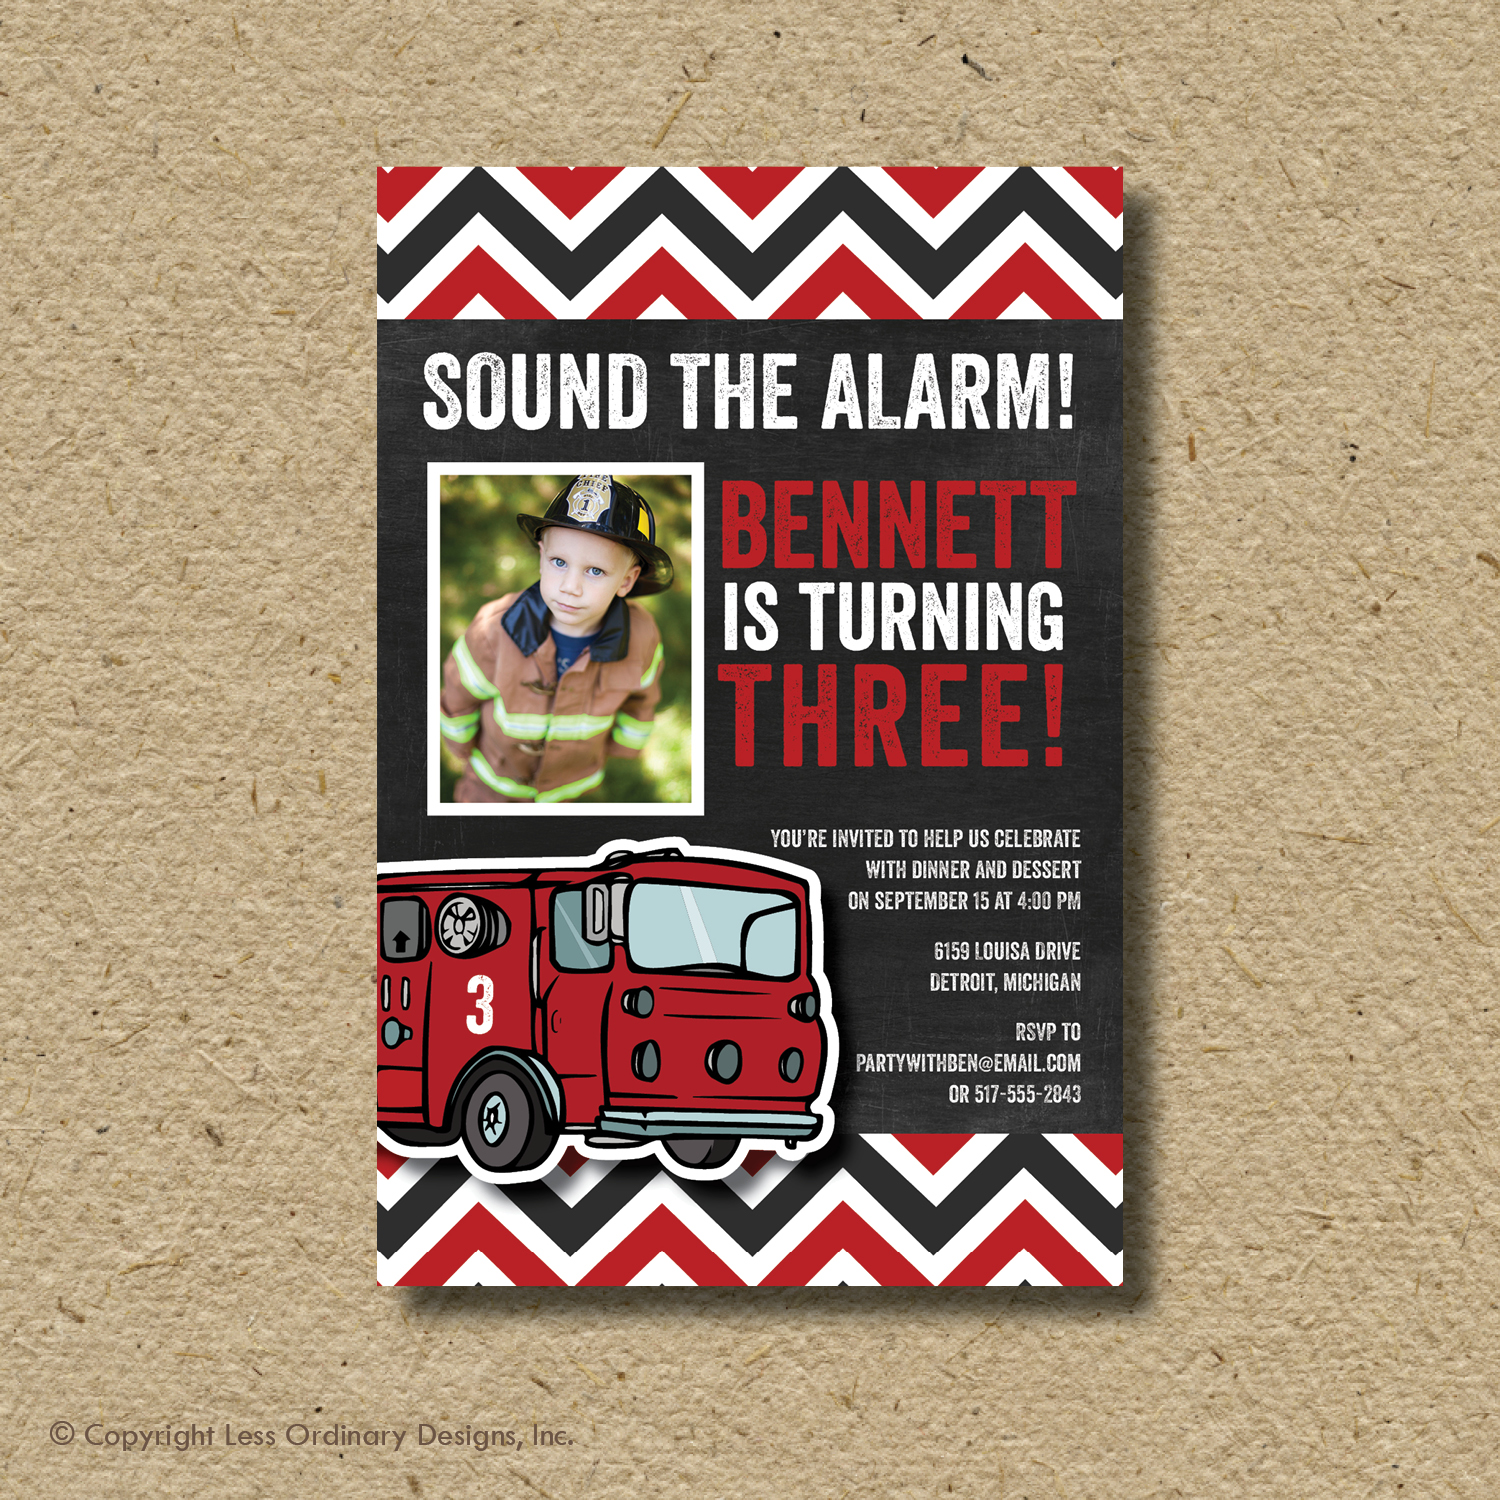 Less Ordinary Designs: Sound The Alarm! Bennett's